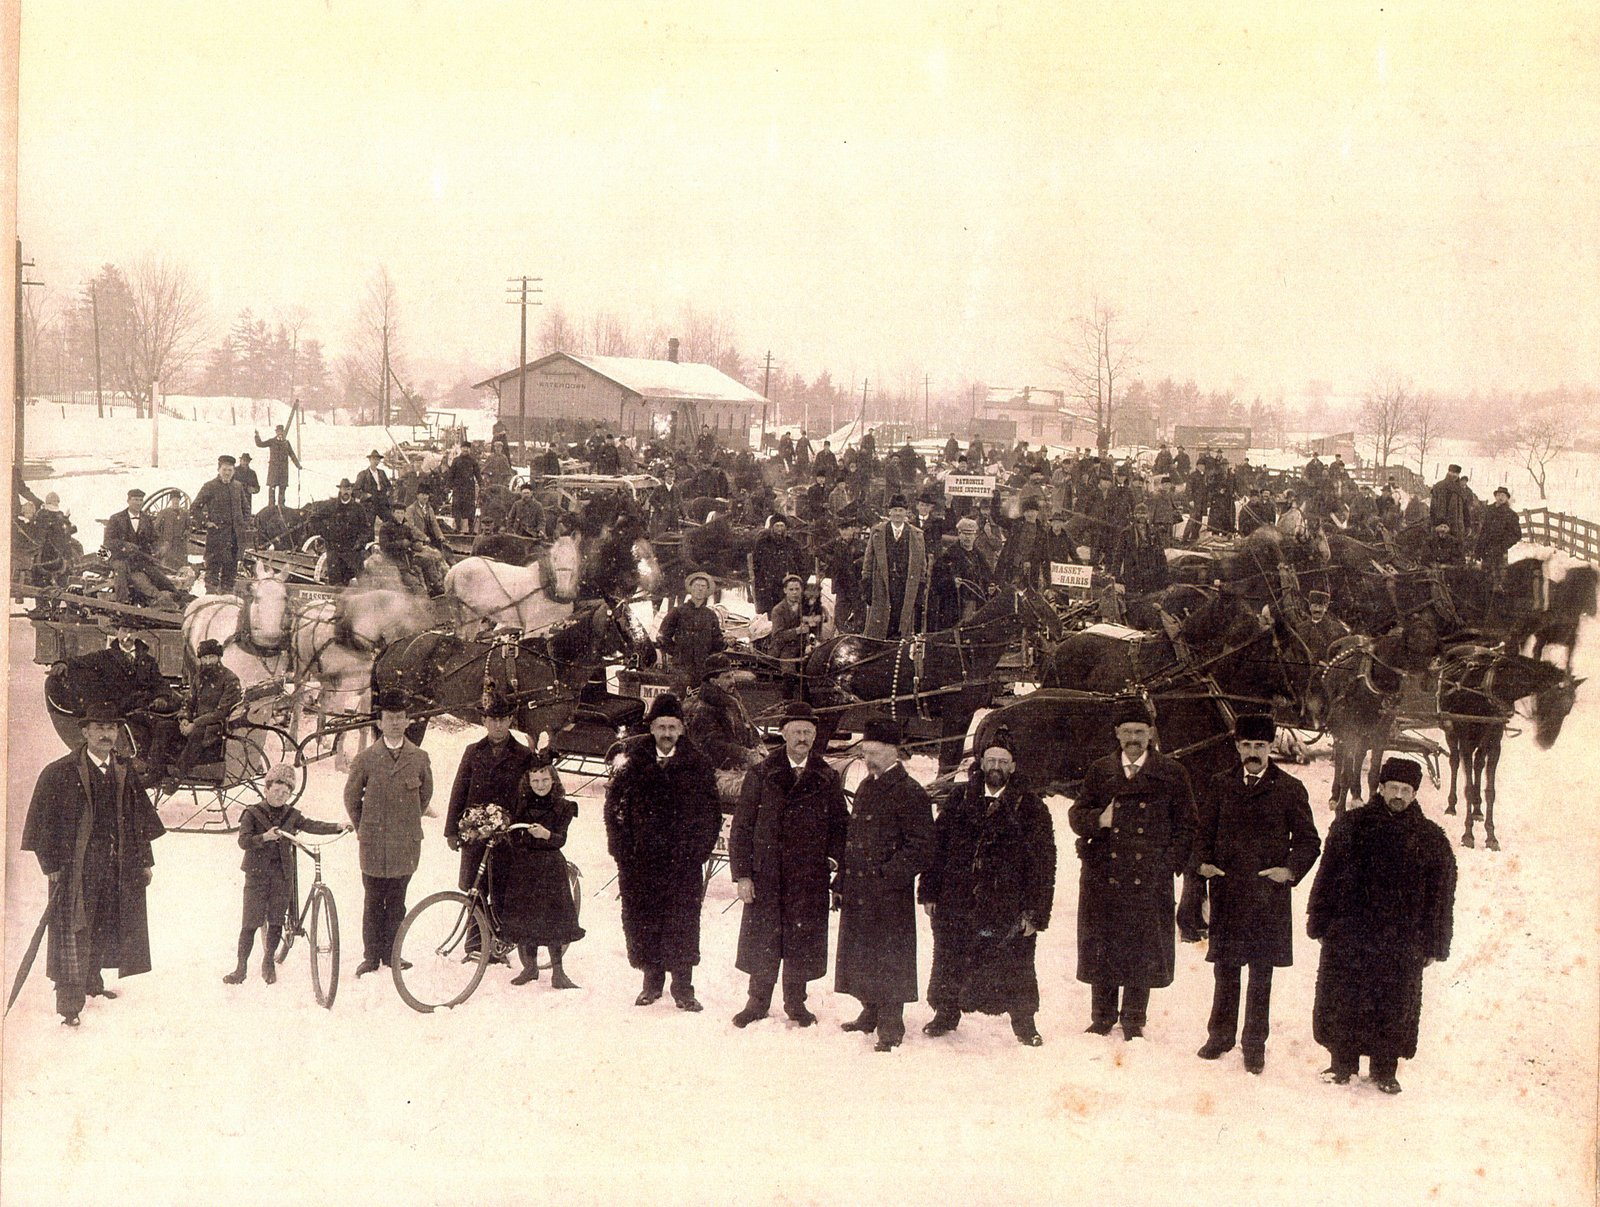 Old Aldershot ('Waterdown') train station in winter, 1899